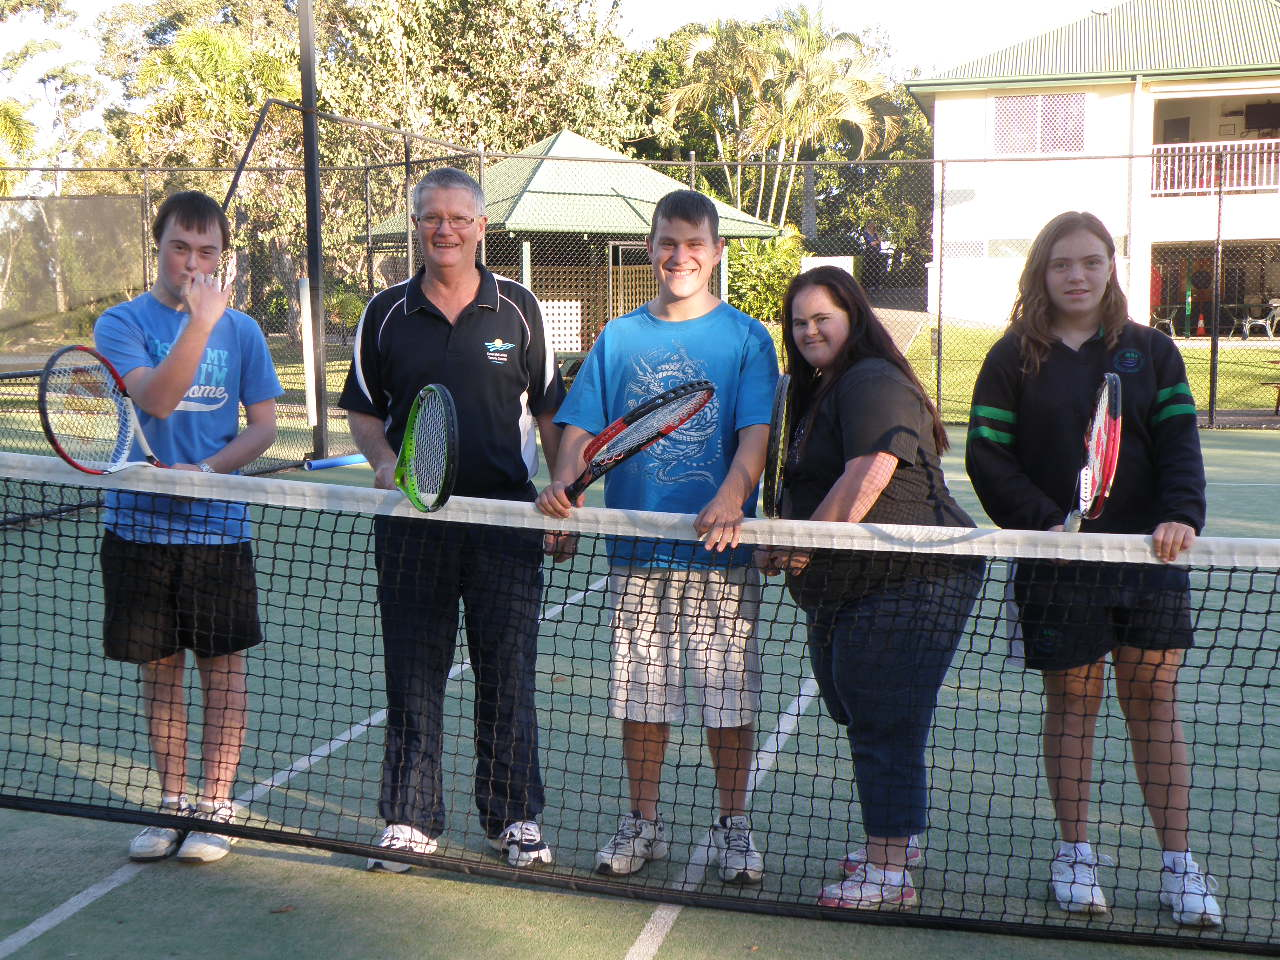 Peter Miller - Special Needs Tennis Coaching - Emerald Lakes Tennis Centre